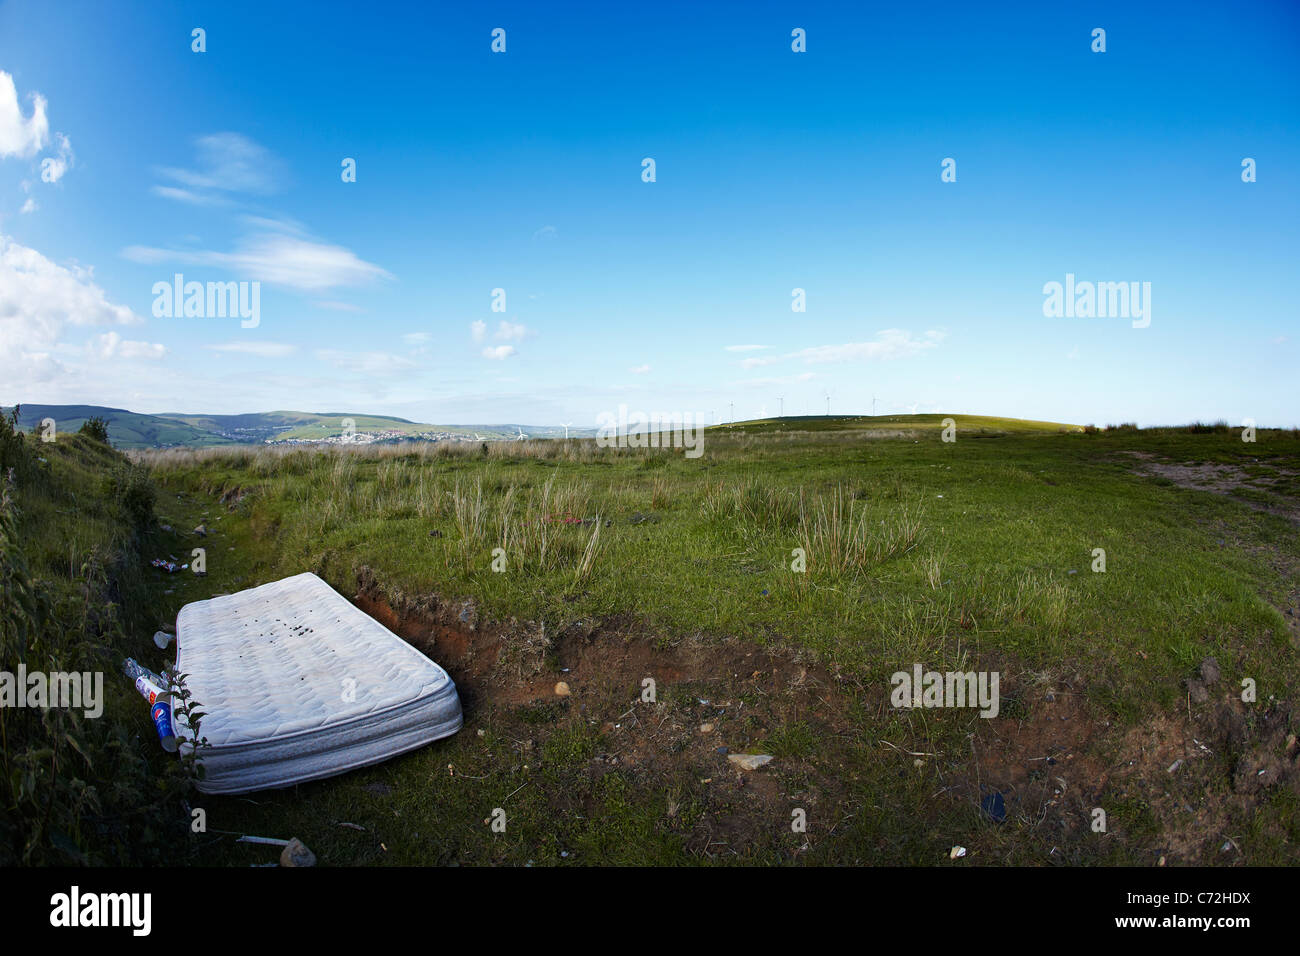 Old Mattress dumped by the side of the road, South Wales, UK - Stock Image